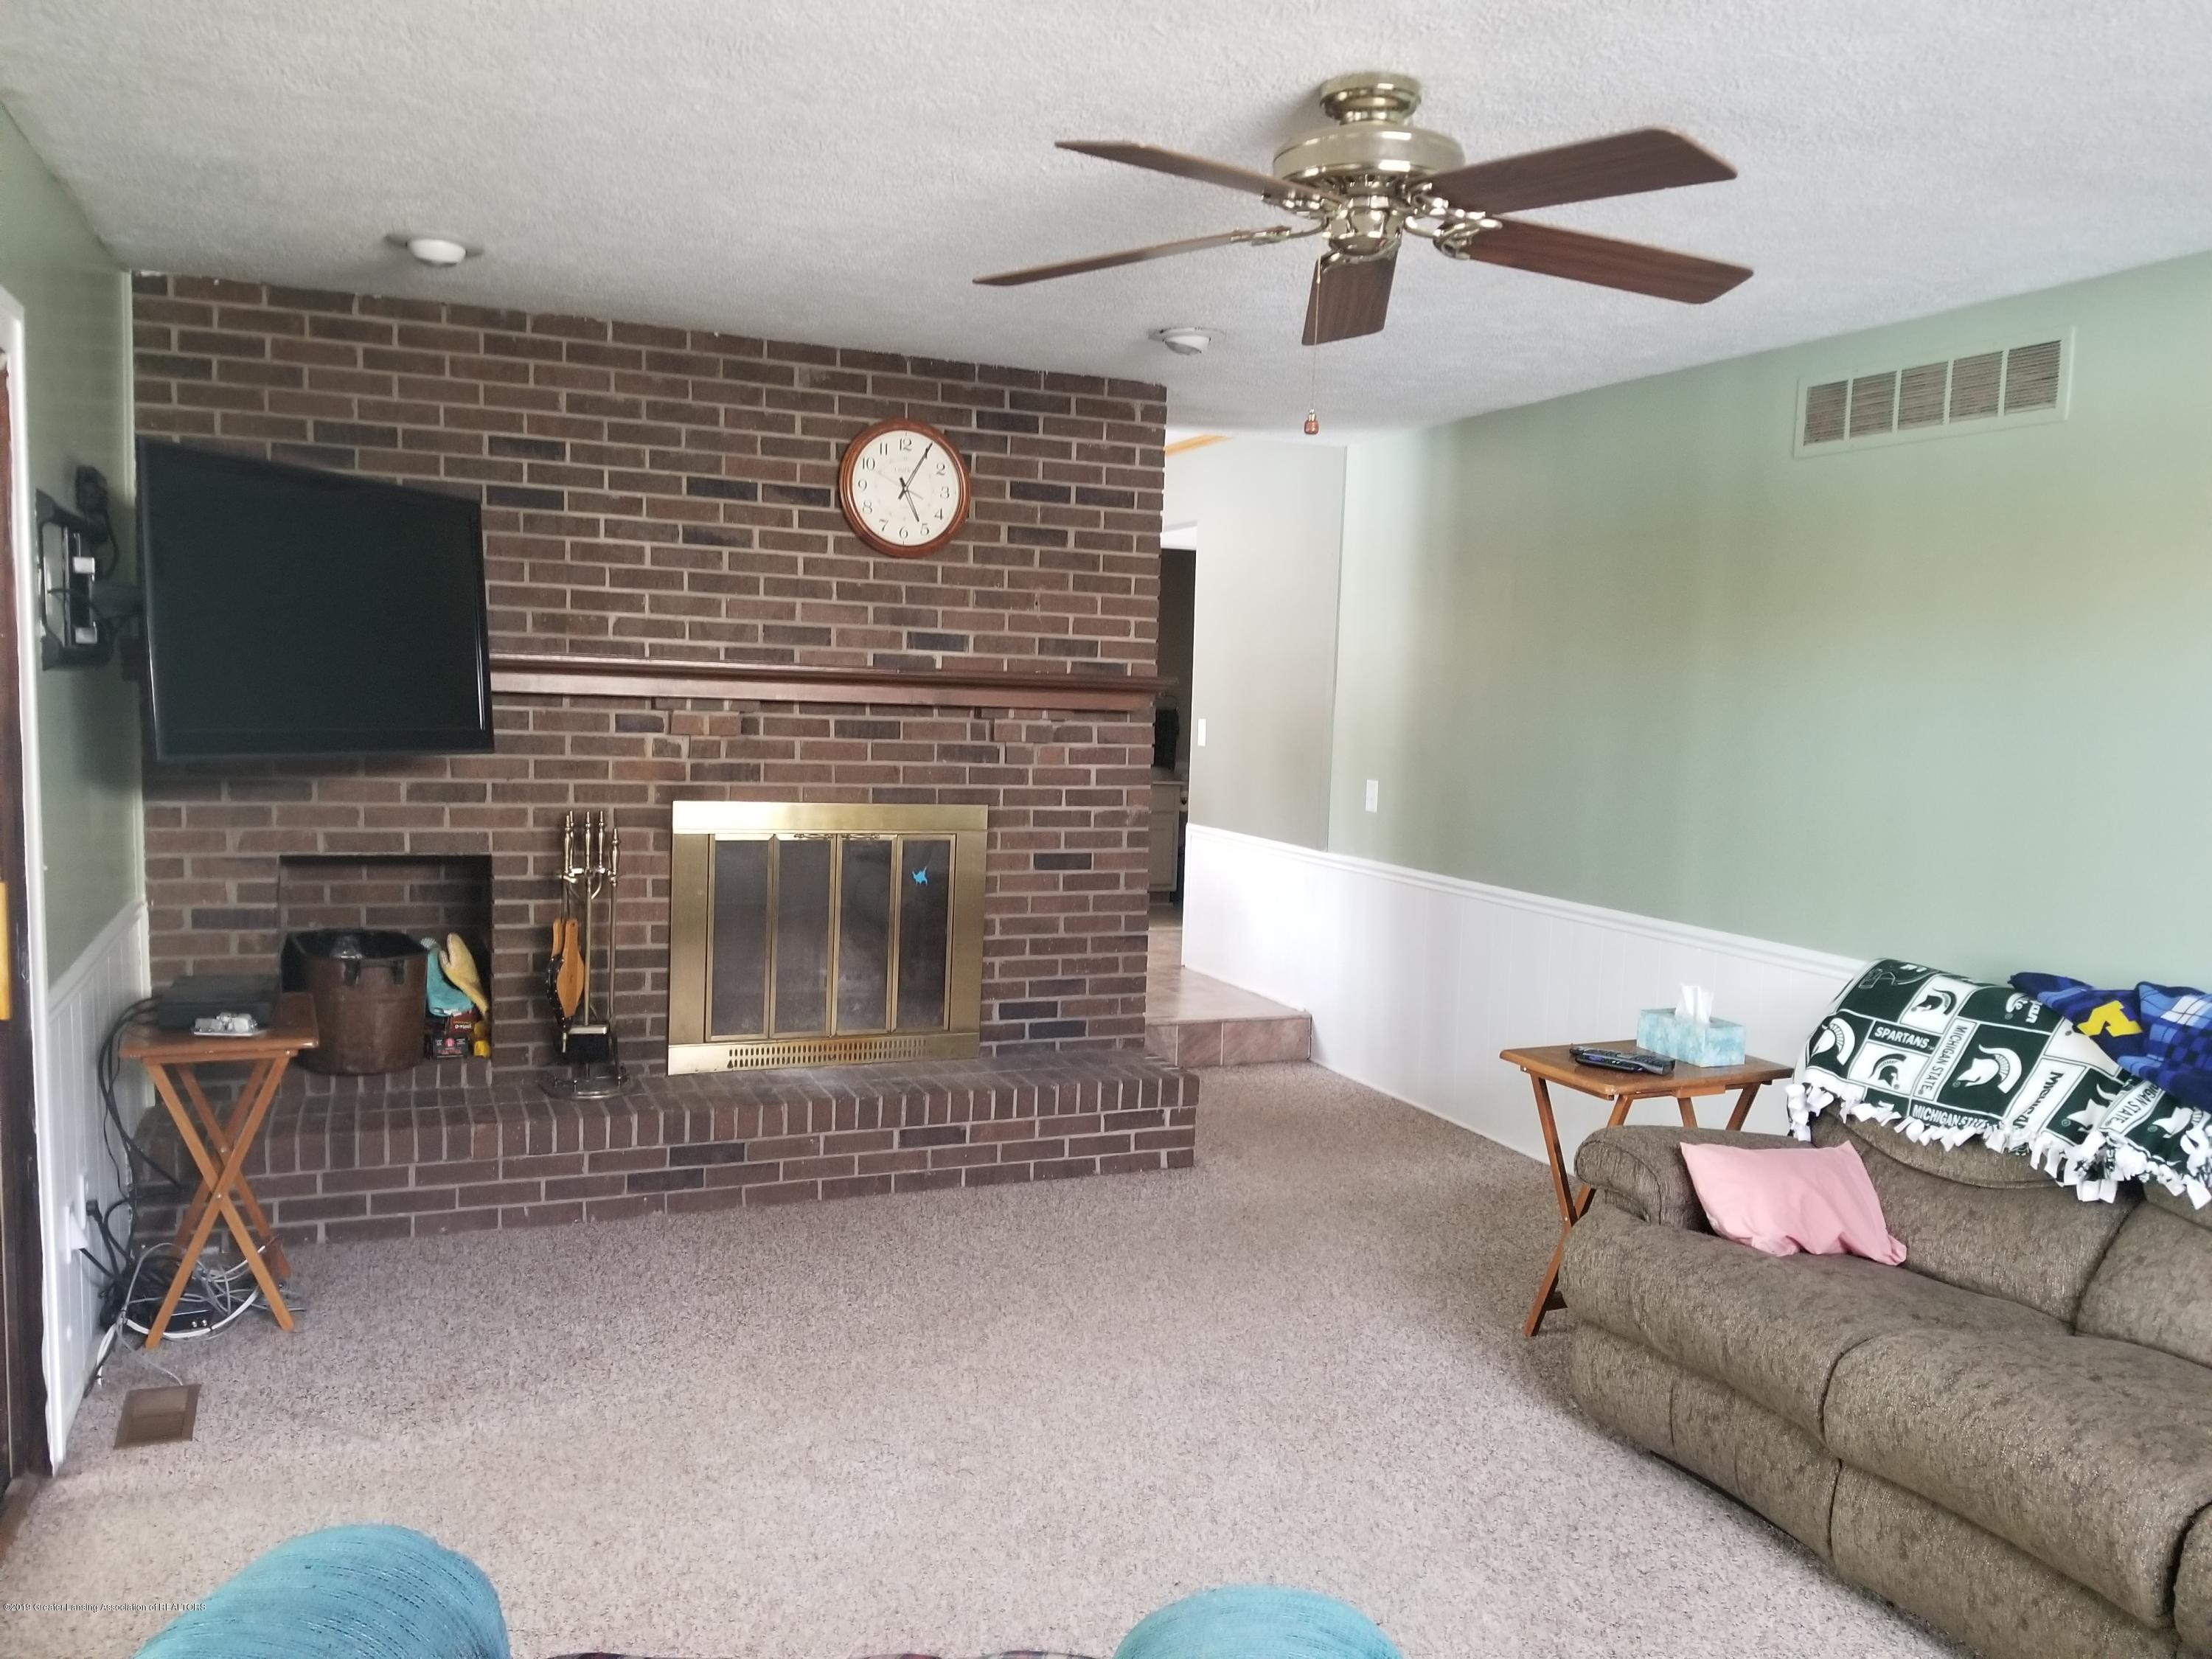 13215 Old Hickory Trail - 20190228_170339 - 2